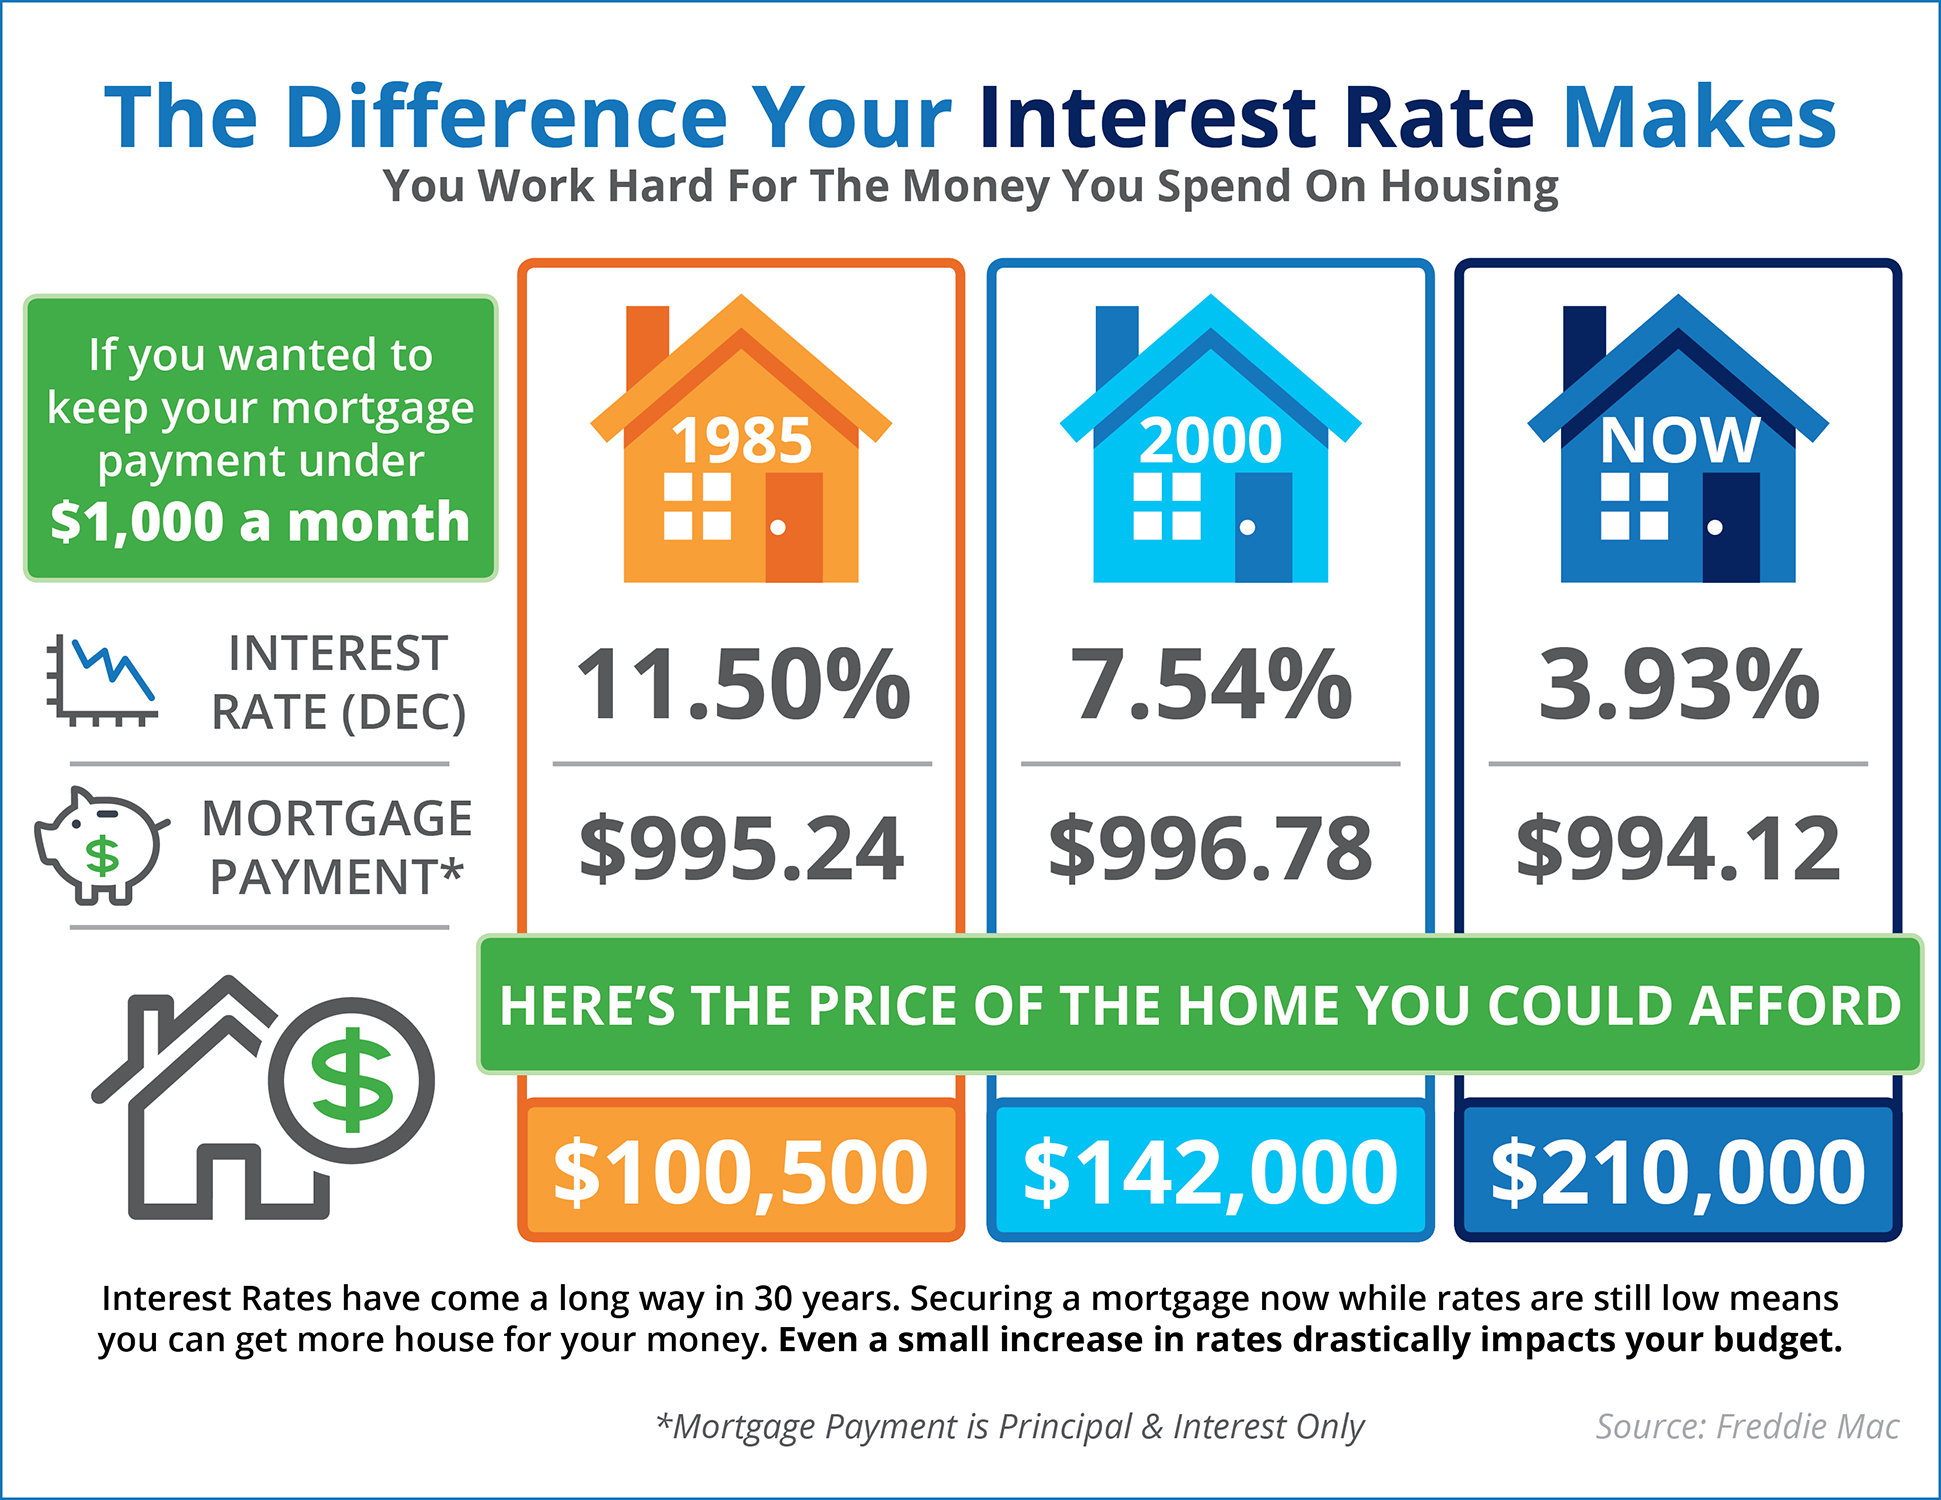 Do You Know The Difference Your Interest Rate Makes? [INFOGRAPHIC]   Simplifying The Market